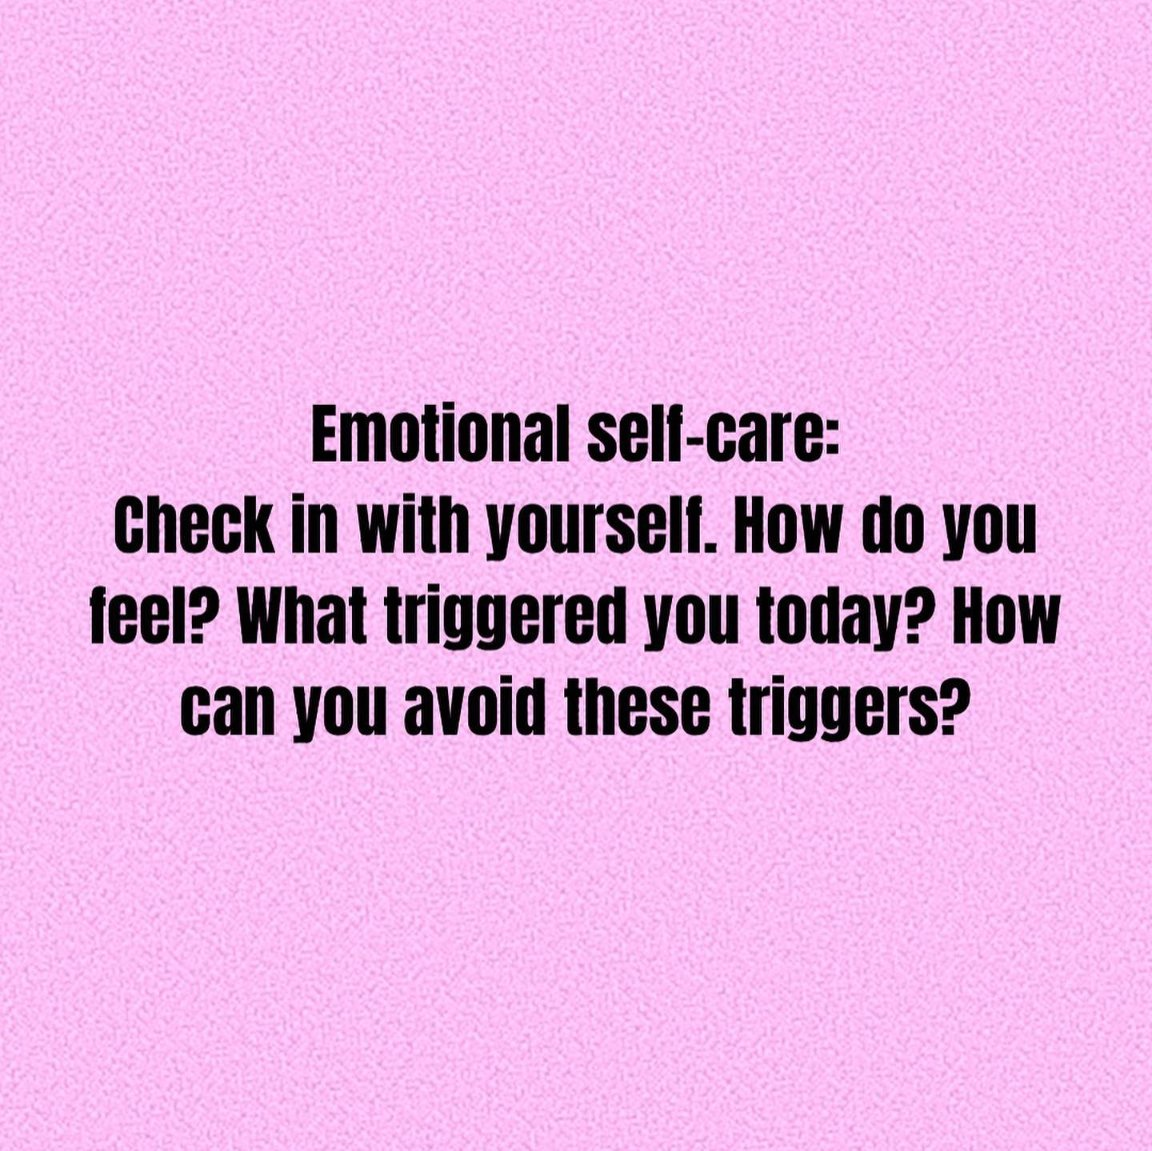 Self care is most effective when you're catering to all parts of you... mind, body and soul 💜💛 #MondayMotivation #mondaythoughts #selflove